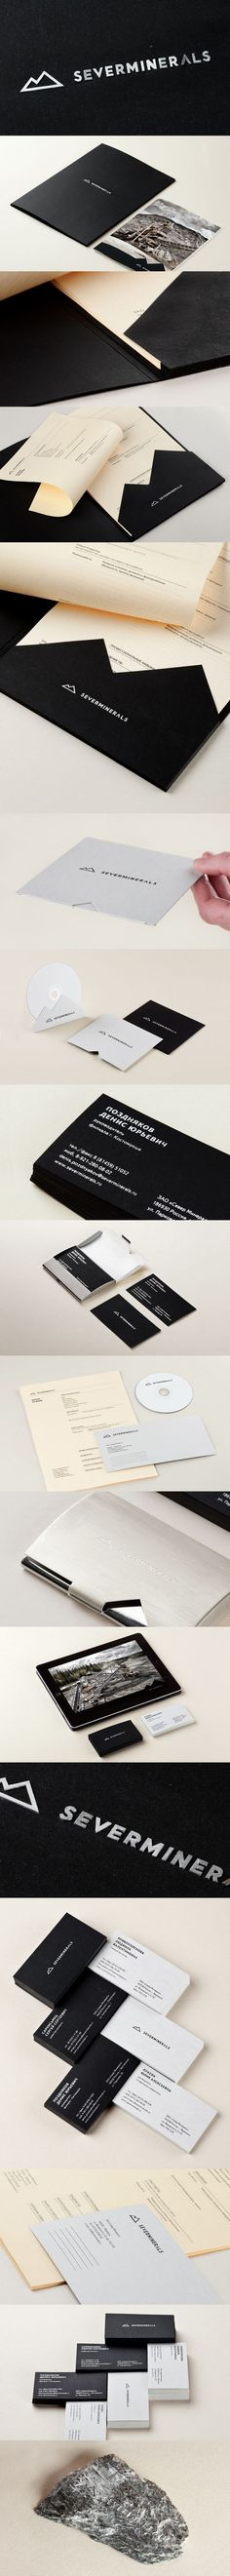 Severminerals, Identity Branding Suite. Black. Silver. Business Card. Letterhead.. If you're a user experience professional, listen to The UX Blog Podcast on iTunes.